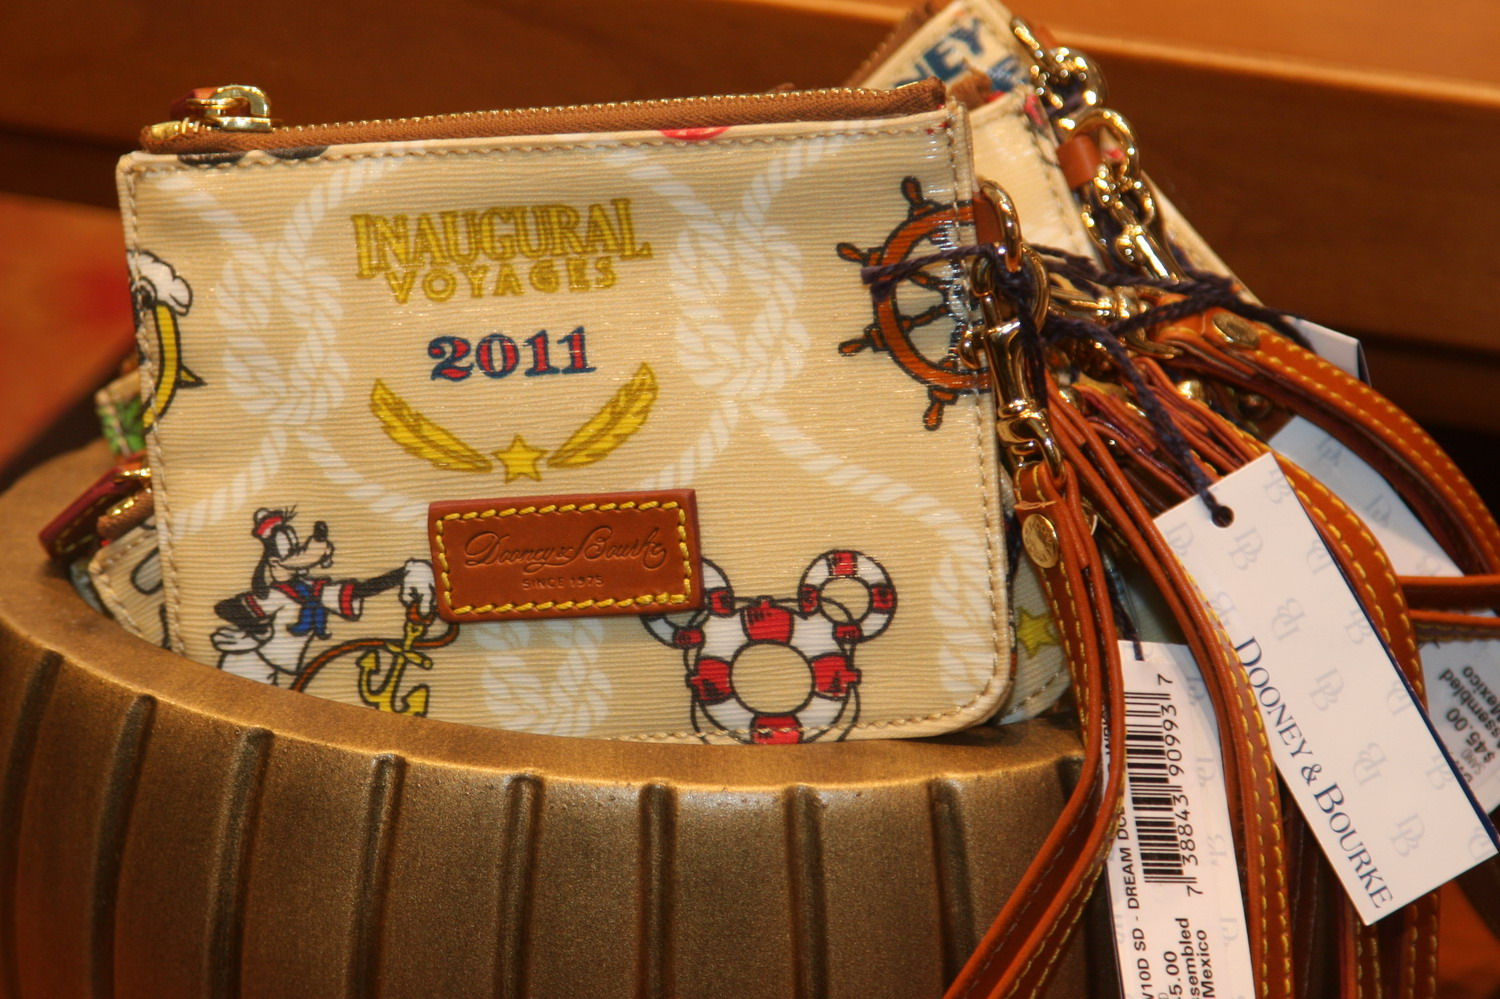 Disney Dream Inaugural Year Dooney & Bourke Bags